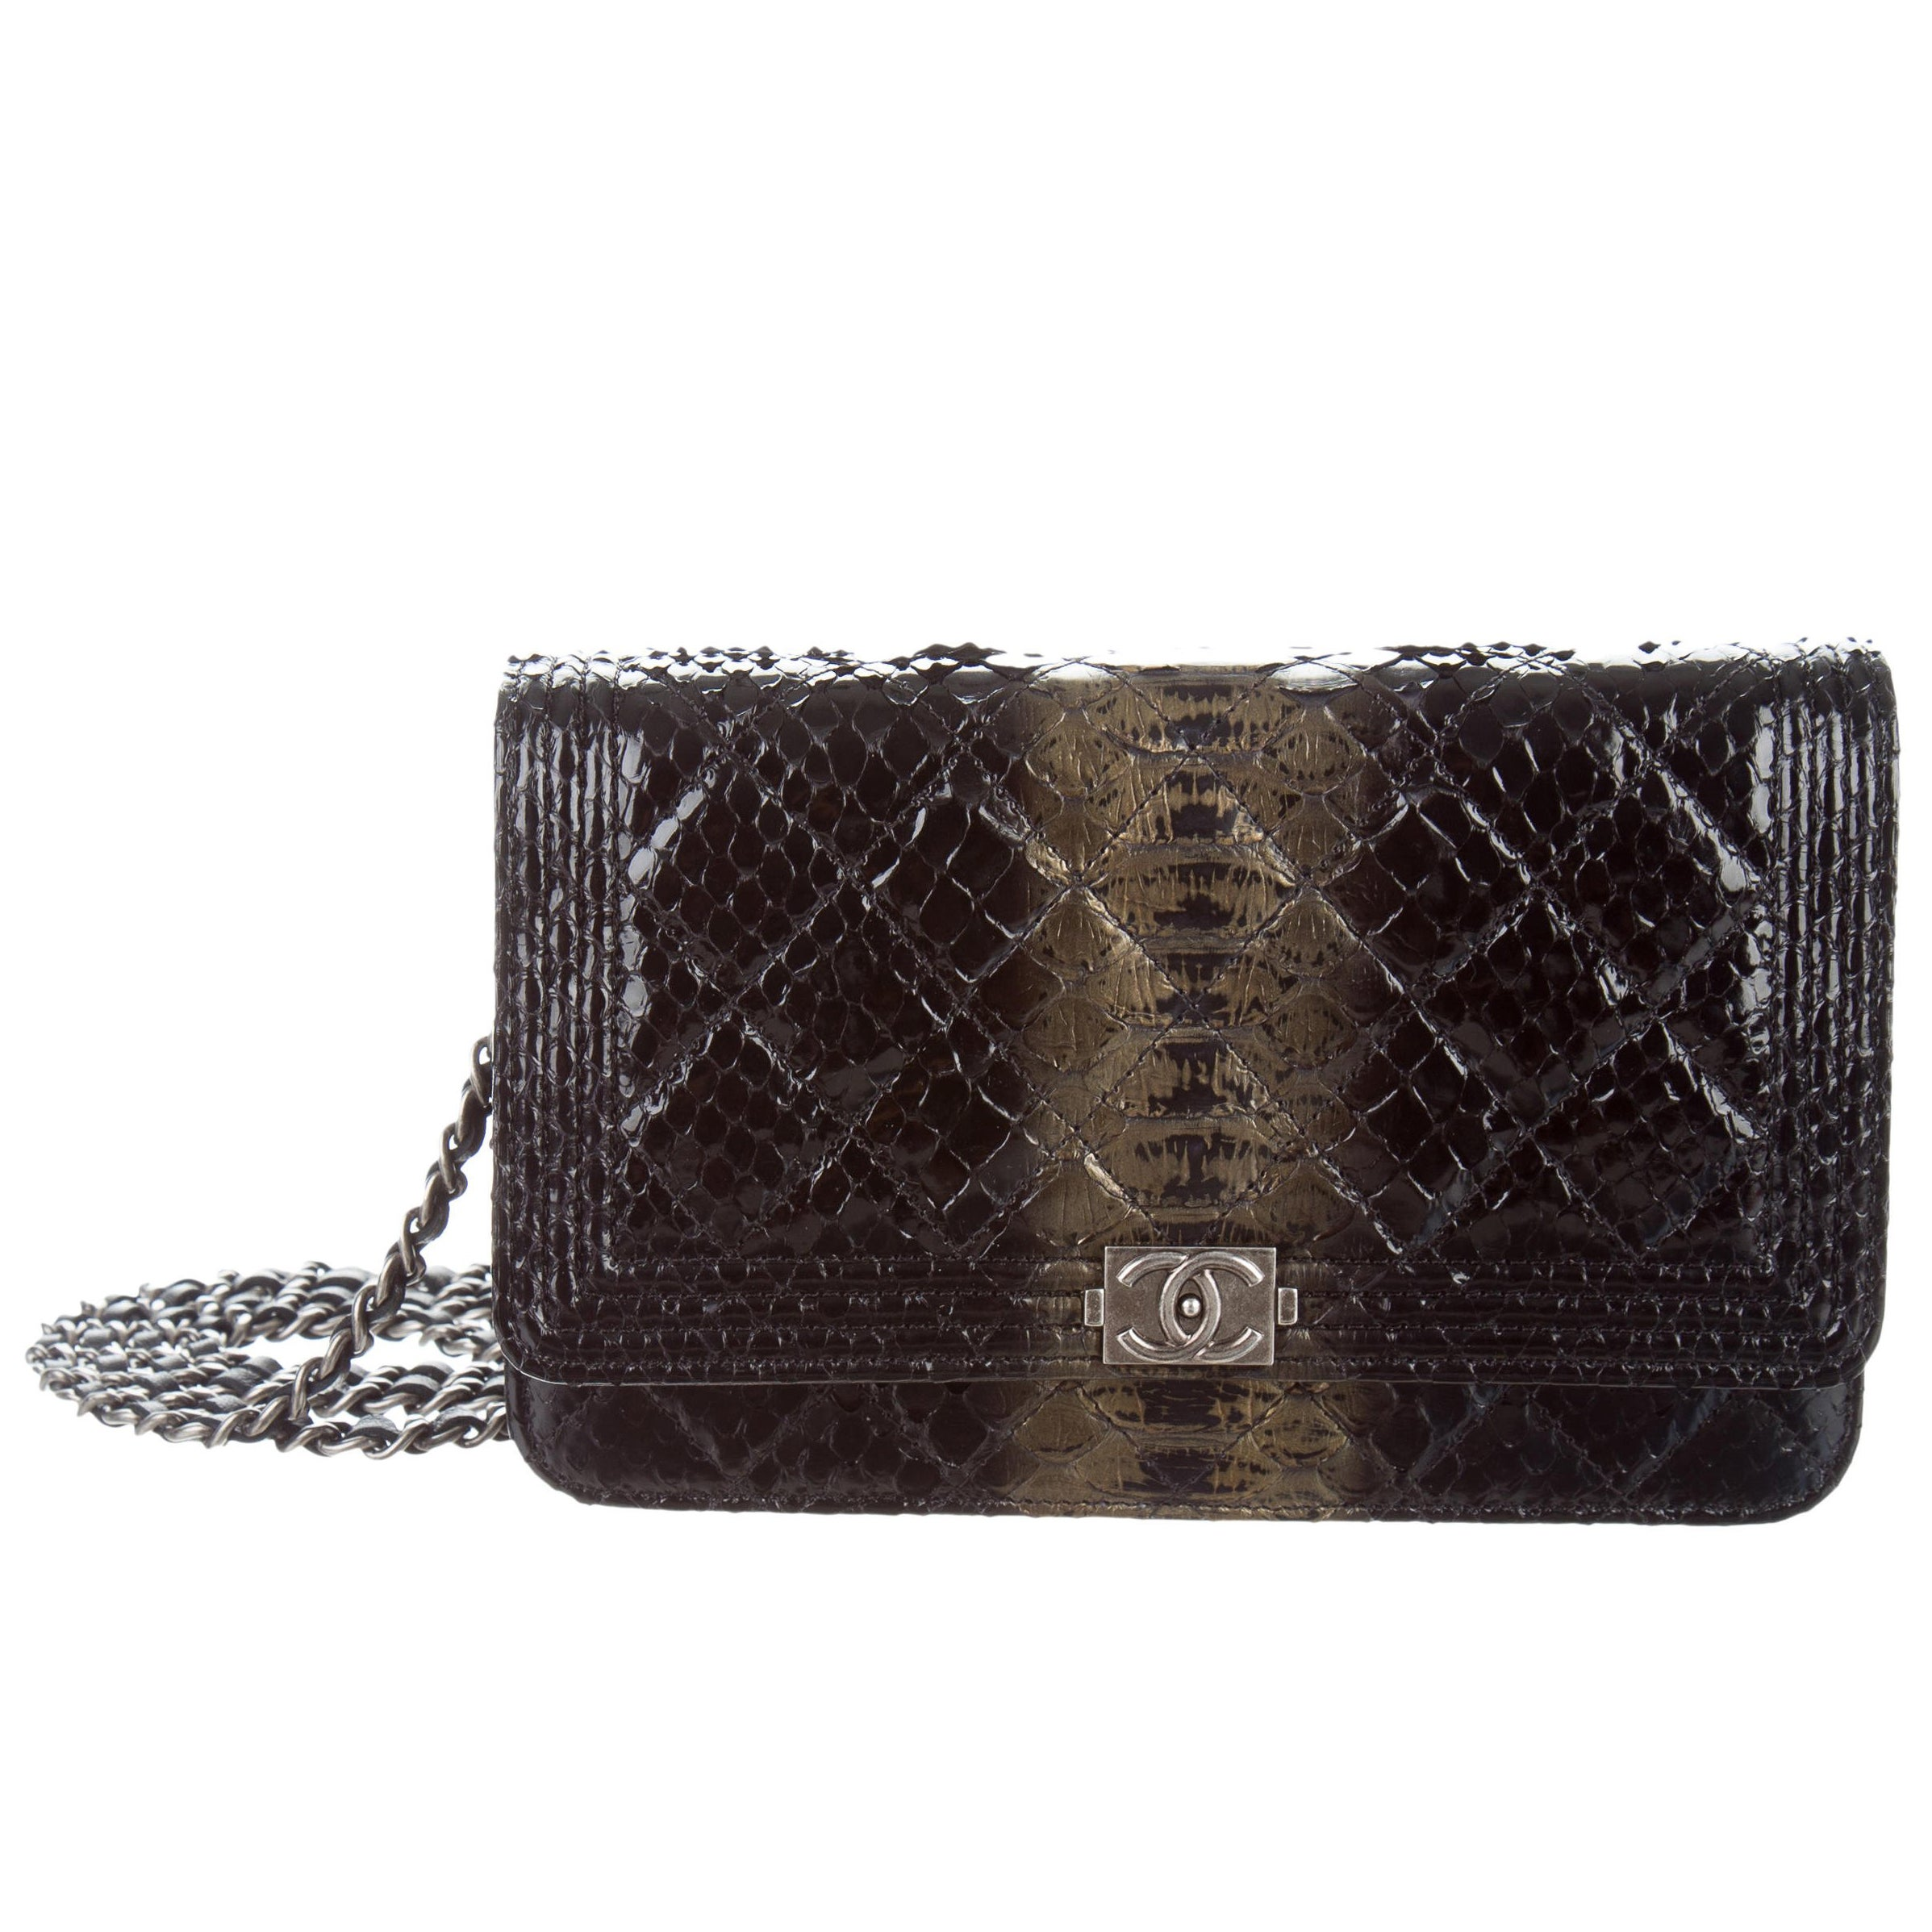 8ab25a3dff2e Chanel Like New Black Gold Python Exotic Leather WOC Shoulder Flap Bag For  Sale at 1stdibs